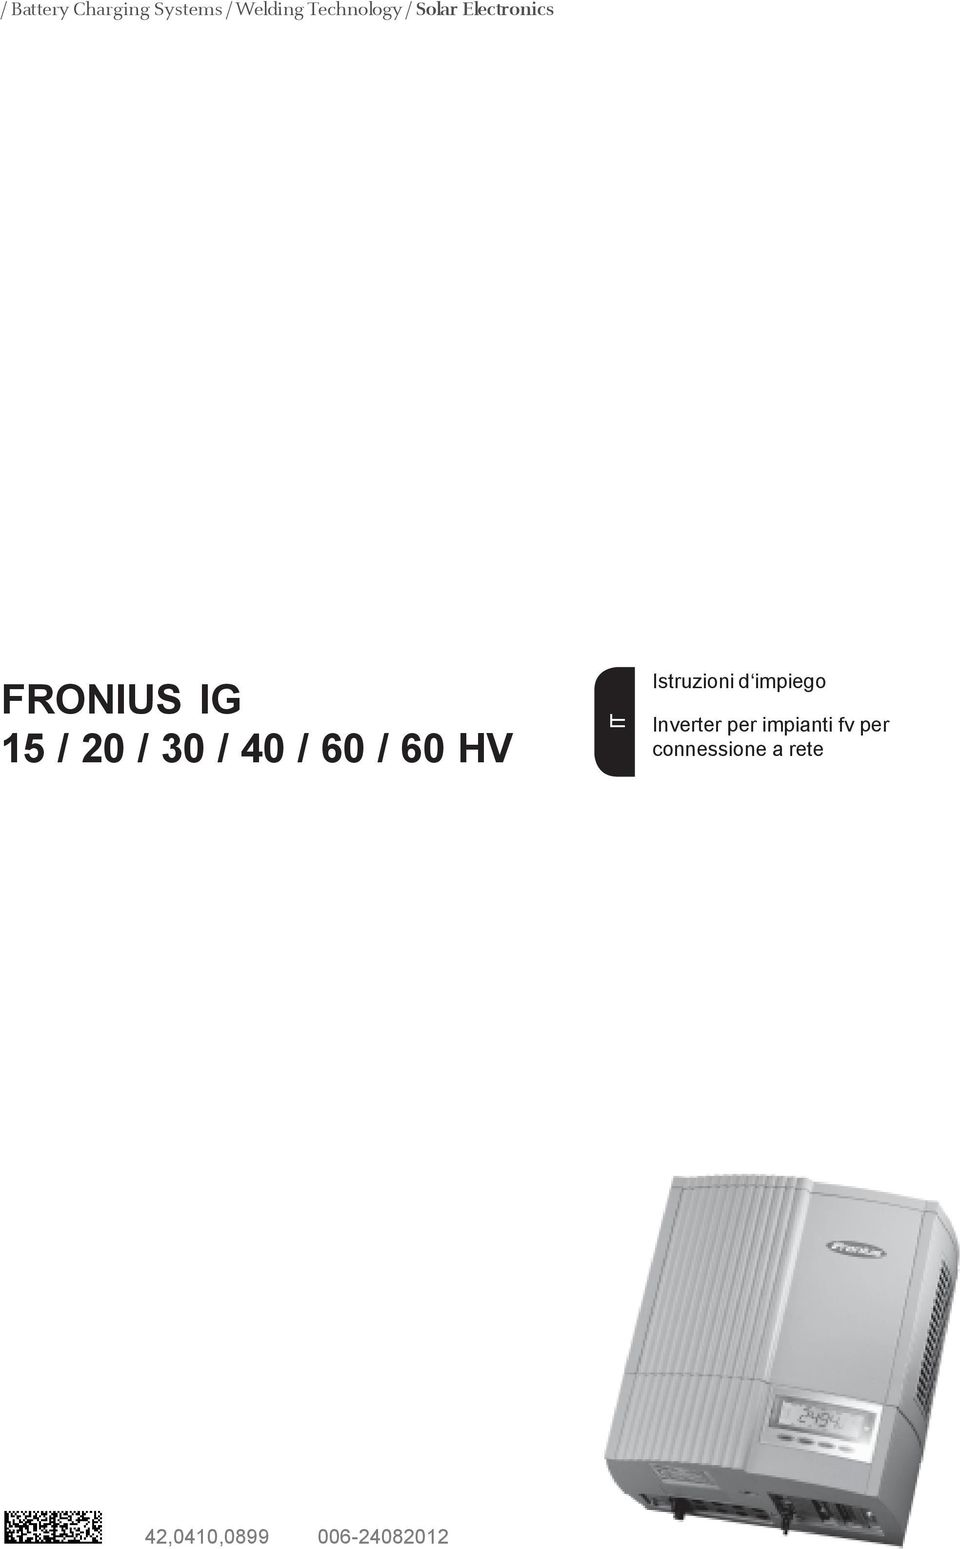 fronius ig 15 20 30 40 60 60 hv pdf. Black Bedroom Furniture Sets. Home Design Ideas